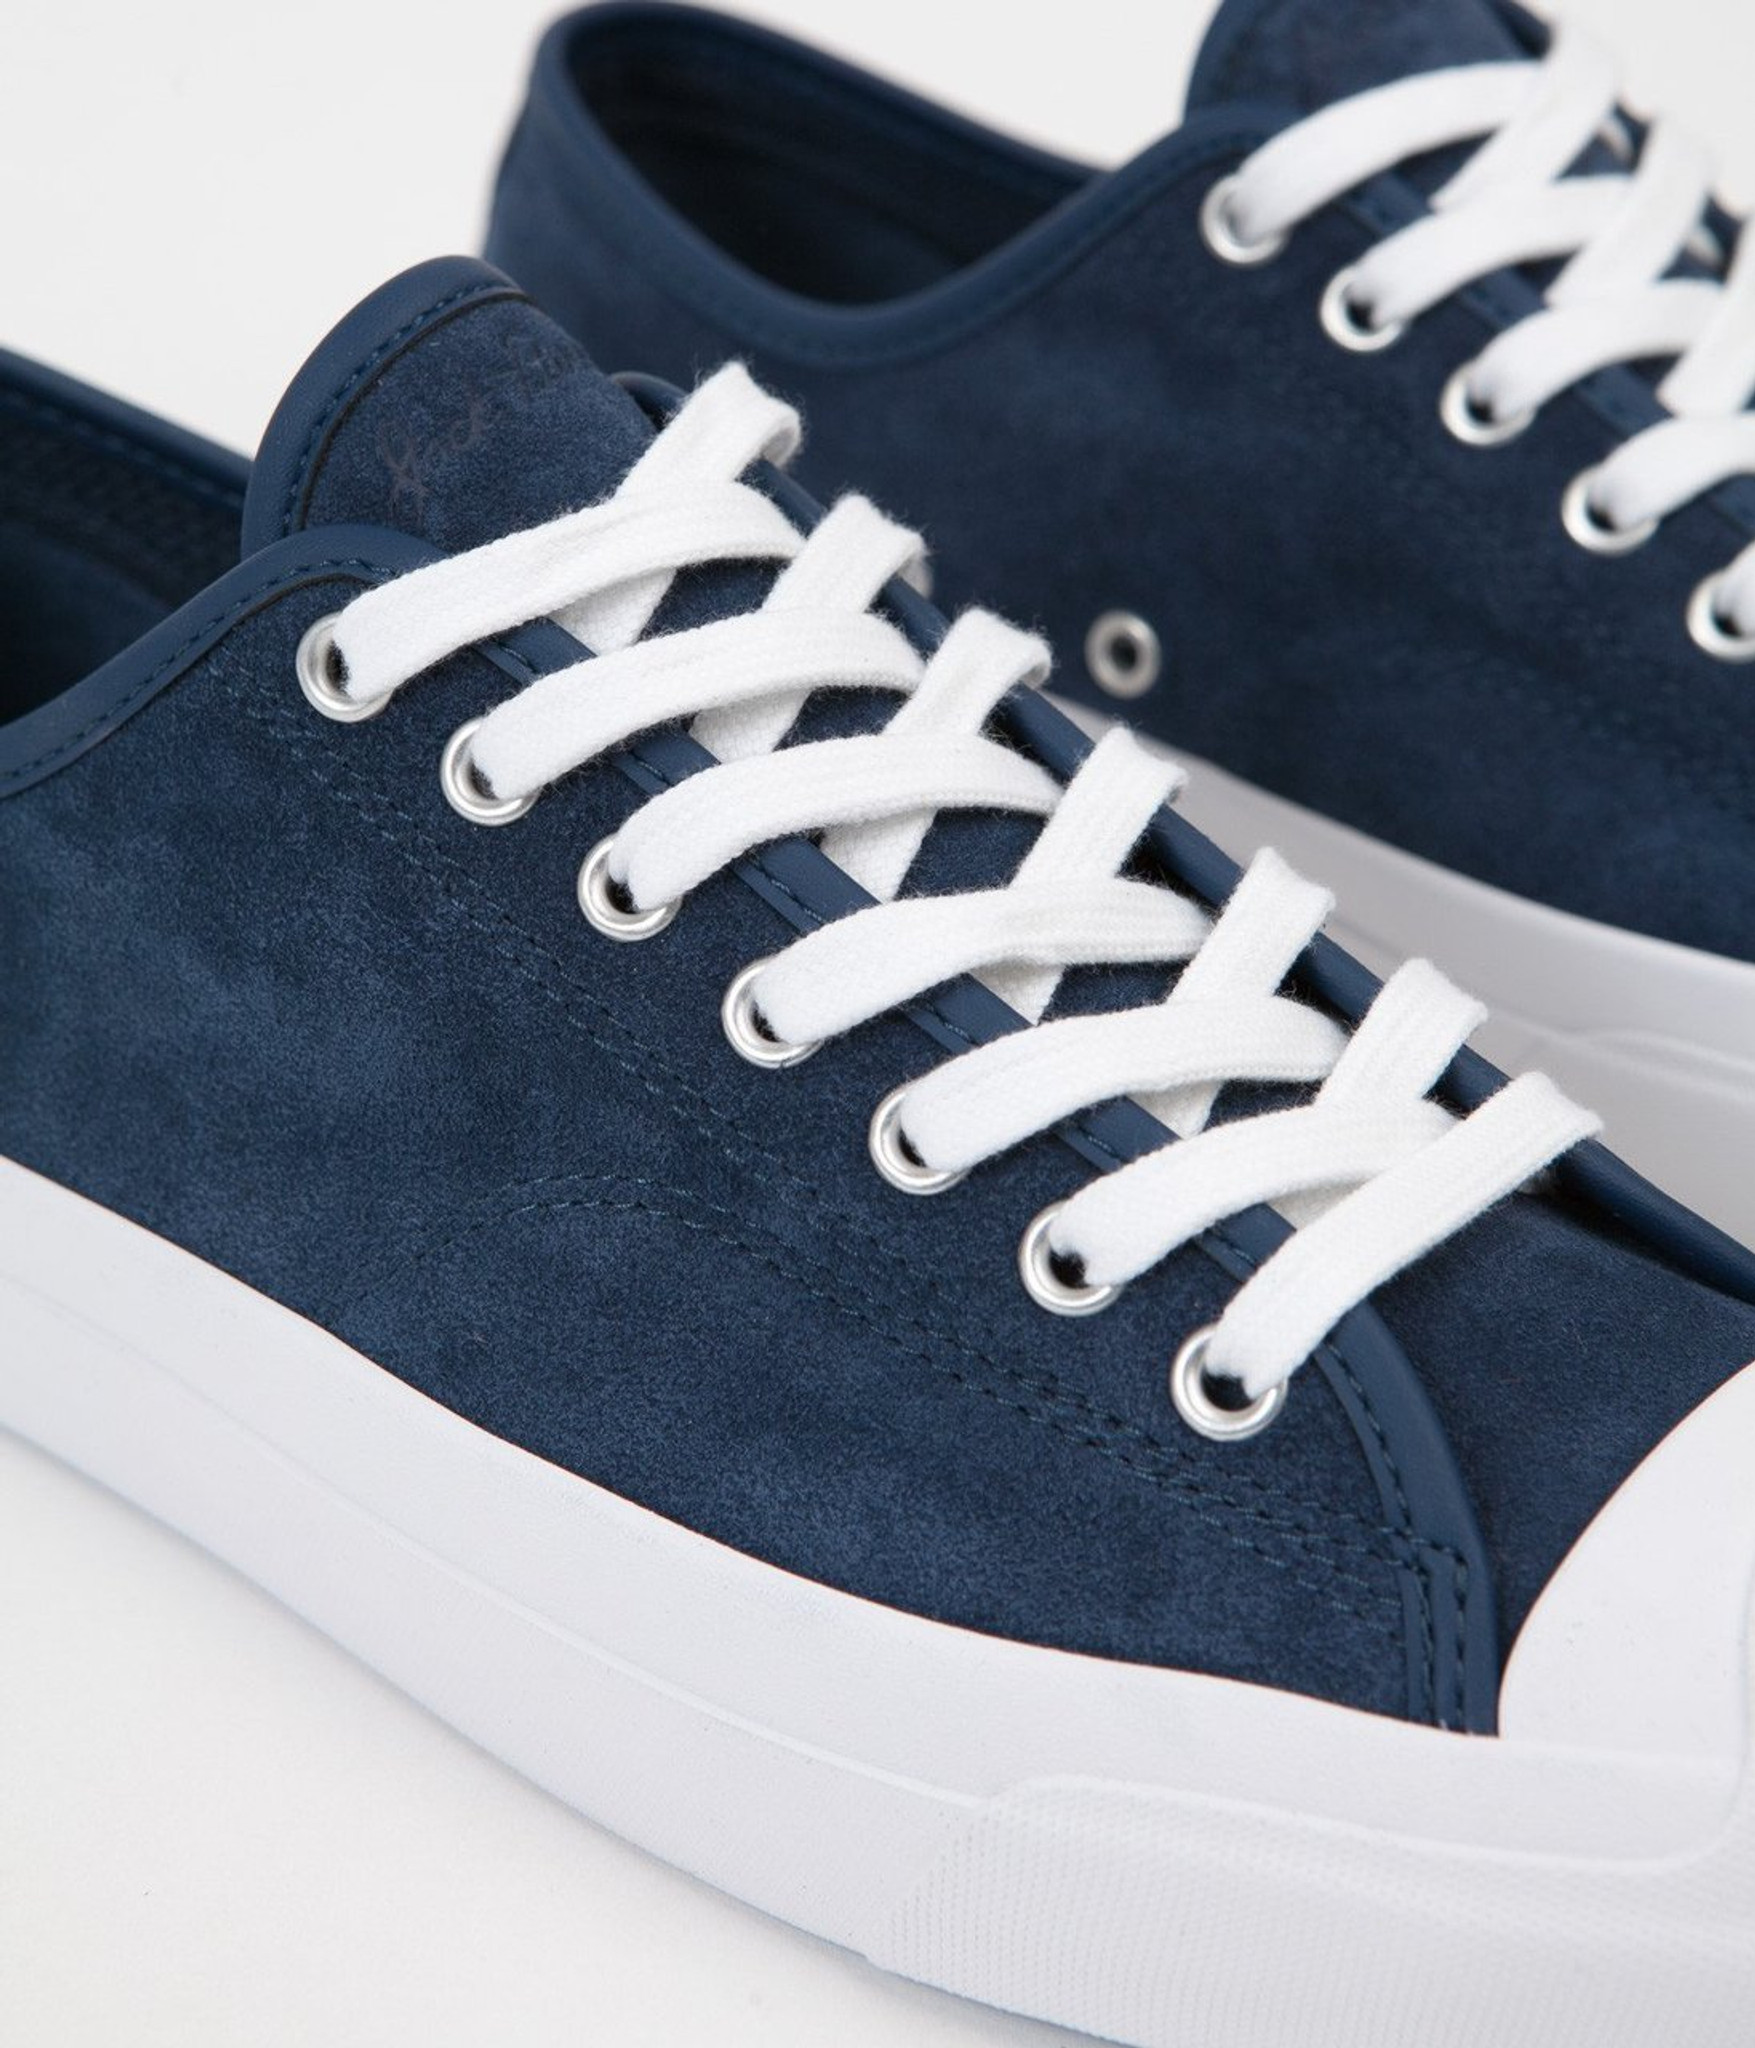 d7f7c763d121 Converse Jack Purcell Pro x Polar Navy Sneakers Shoes FREE SHIPPING ...